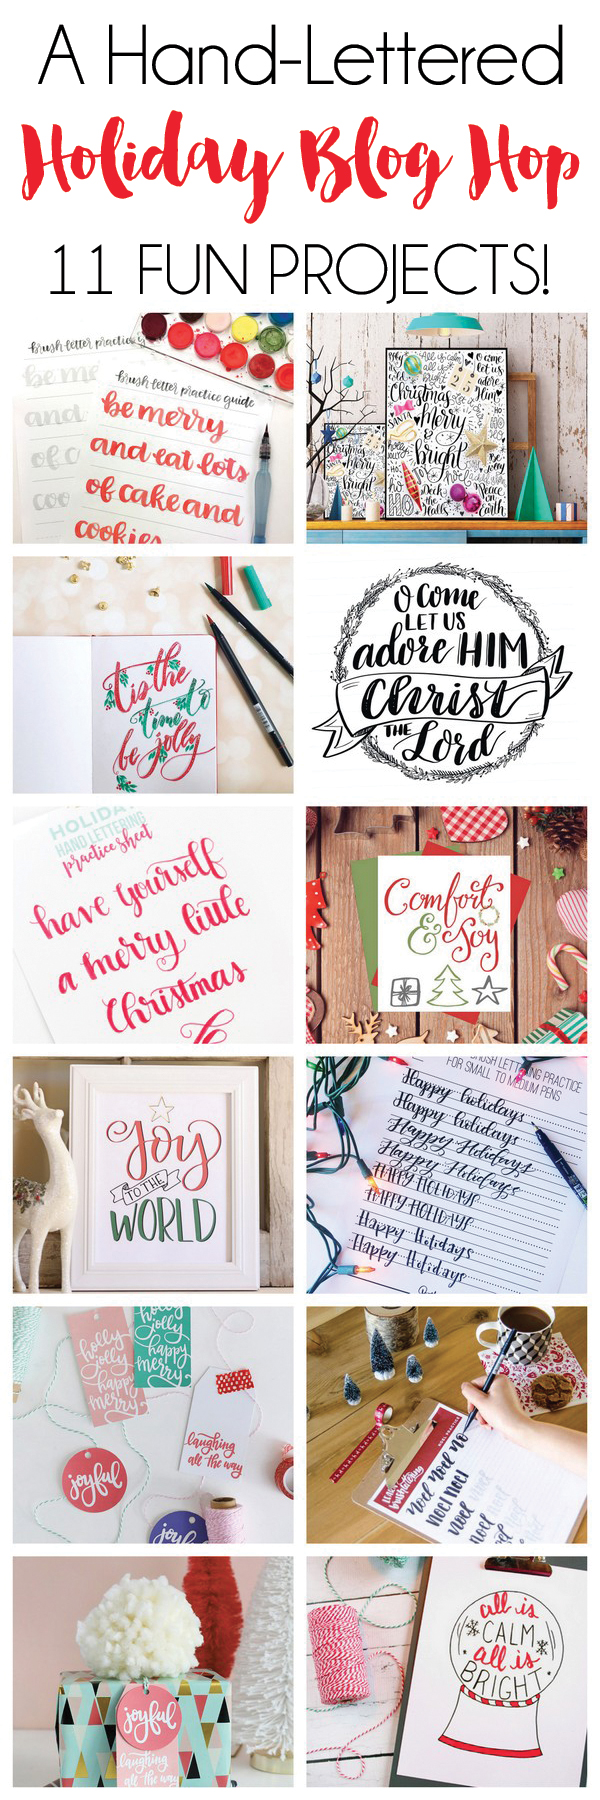 A Hand-Lettered Holiday Blog Hop! 11 fun projects to practice your hand lettering this holiday season.